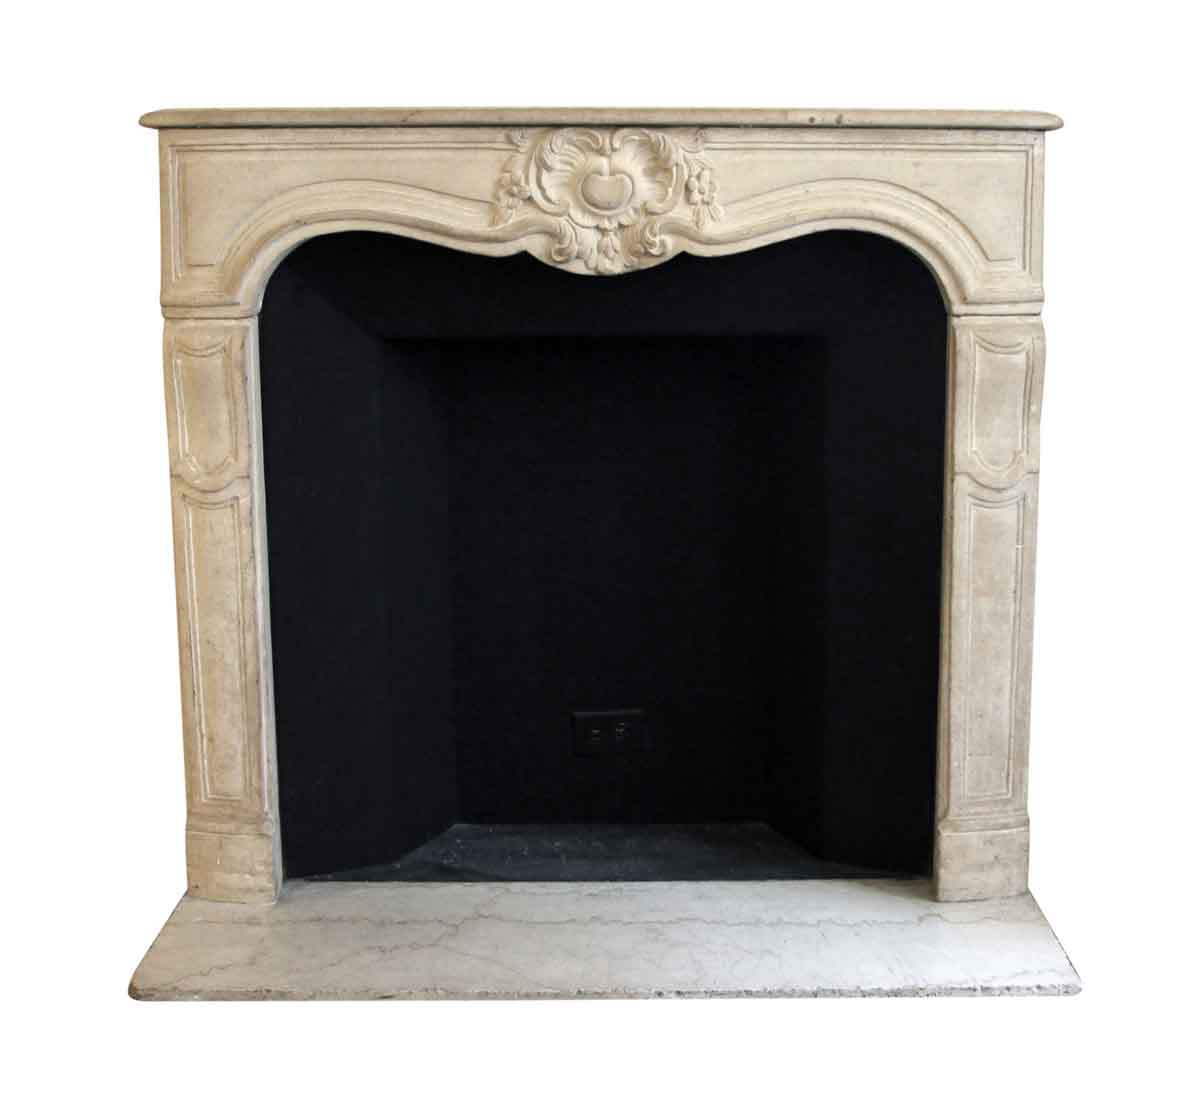 Fireplace Mantel Parts Salvaged Waldorf Limestone Louis Xv French Fireplace Mantel